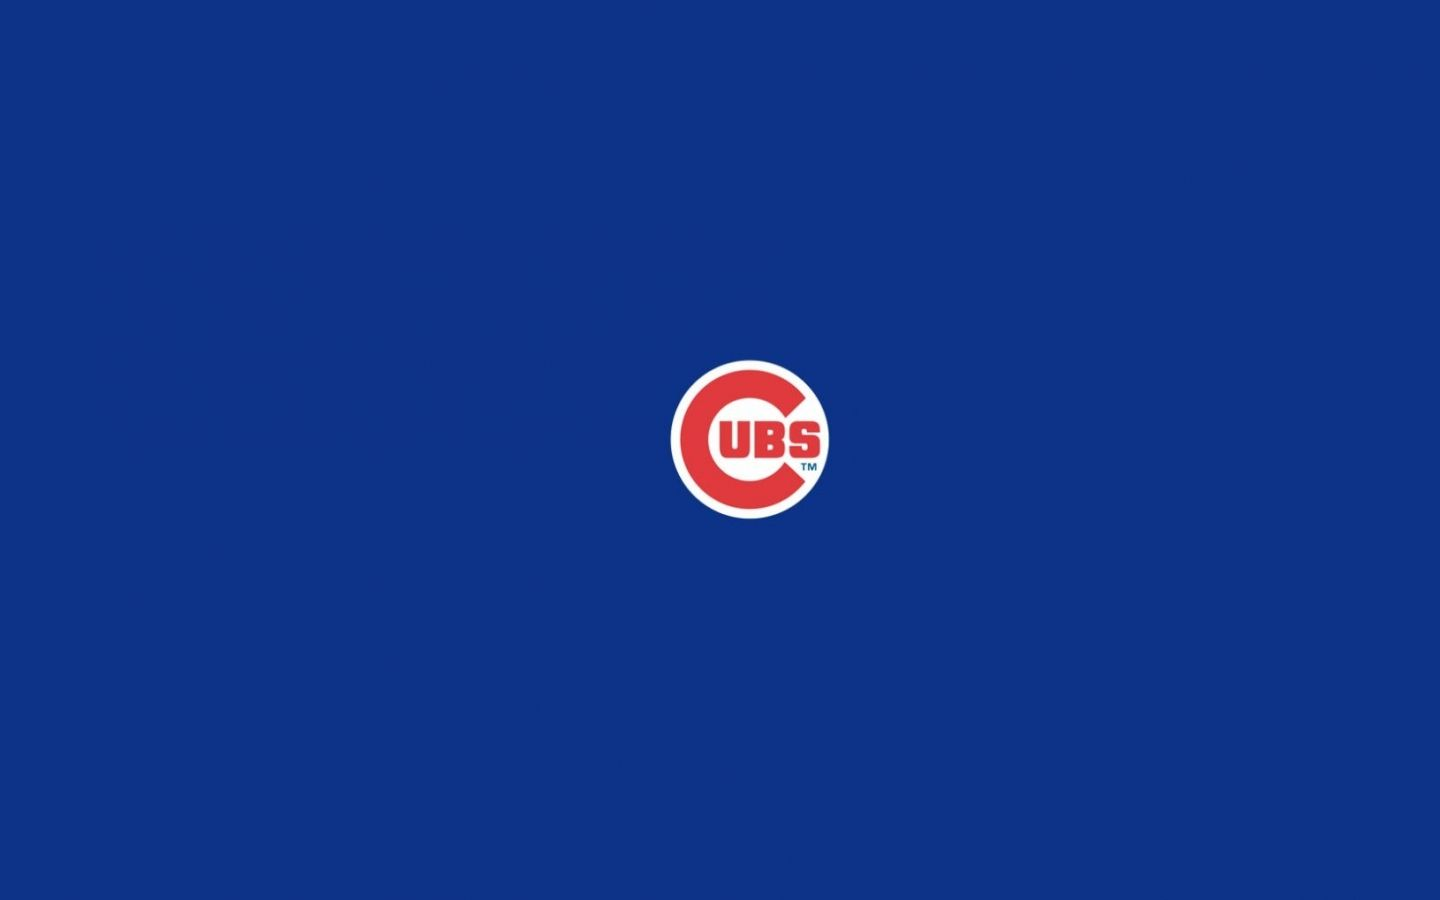 Chicago Cubs Wallpaper High Quality Resolution Chicago Cubs Wallpaper Cubs Wallpaper Chicago Cubs